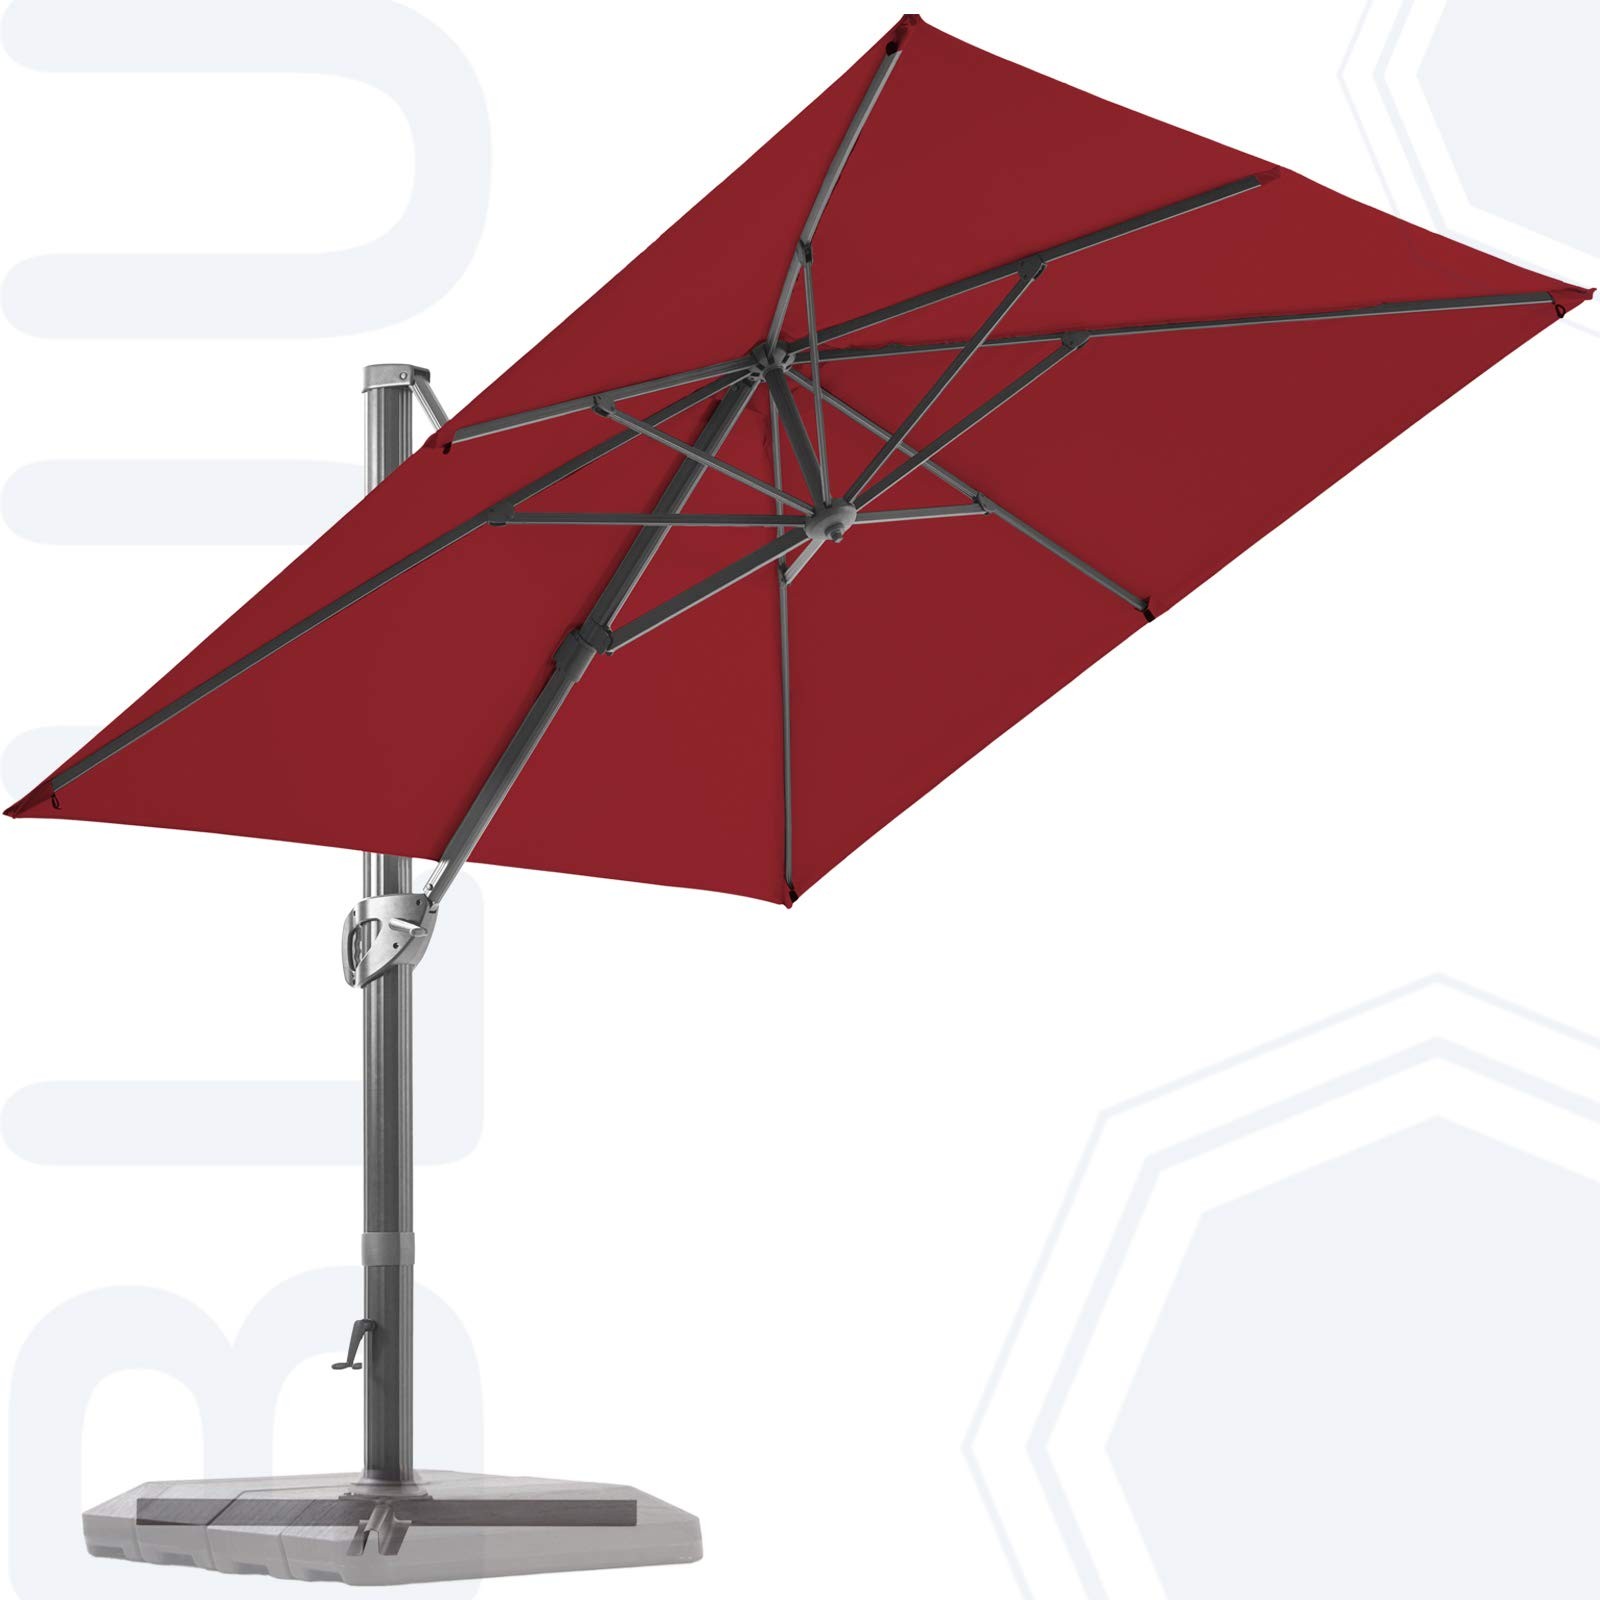 BLUU 10 FT Square Patio Umbrella Offset Cantilever Outdoor Umbrella Aluminum Market Hanging Umbrellas with 360° Rotation Device and Unlimited Tilting System & Cross Base (Burgundy)